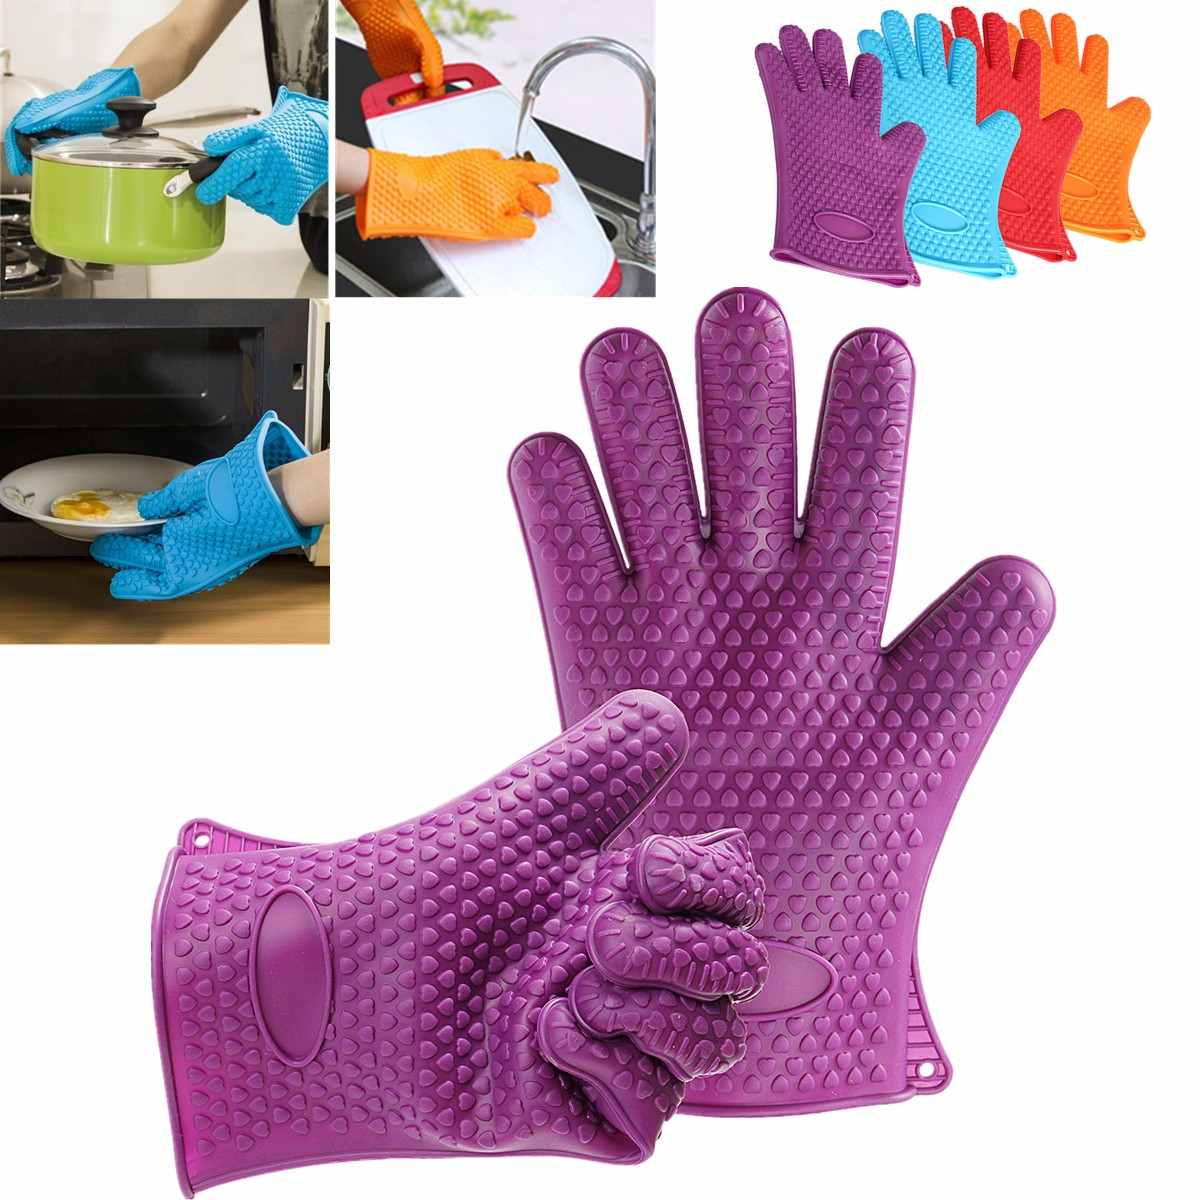 1 Pair food grade Heat Resistant Silicone Kitchen barbecue oven glove Cooking BBQ Grill Glove Oven Mitt Baking Protective gloves diesel часы diesel dz7328 коллекция mini daddy